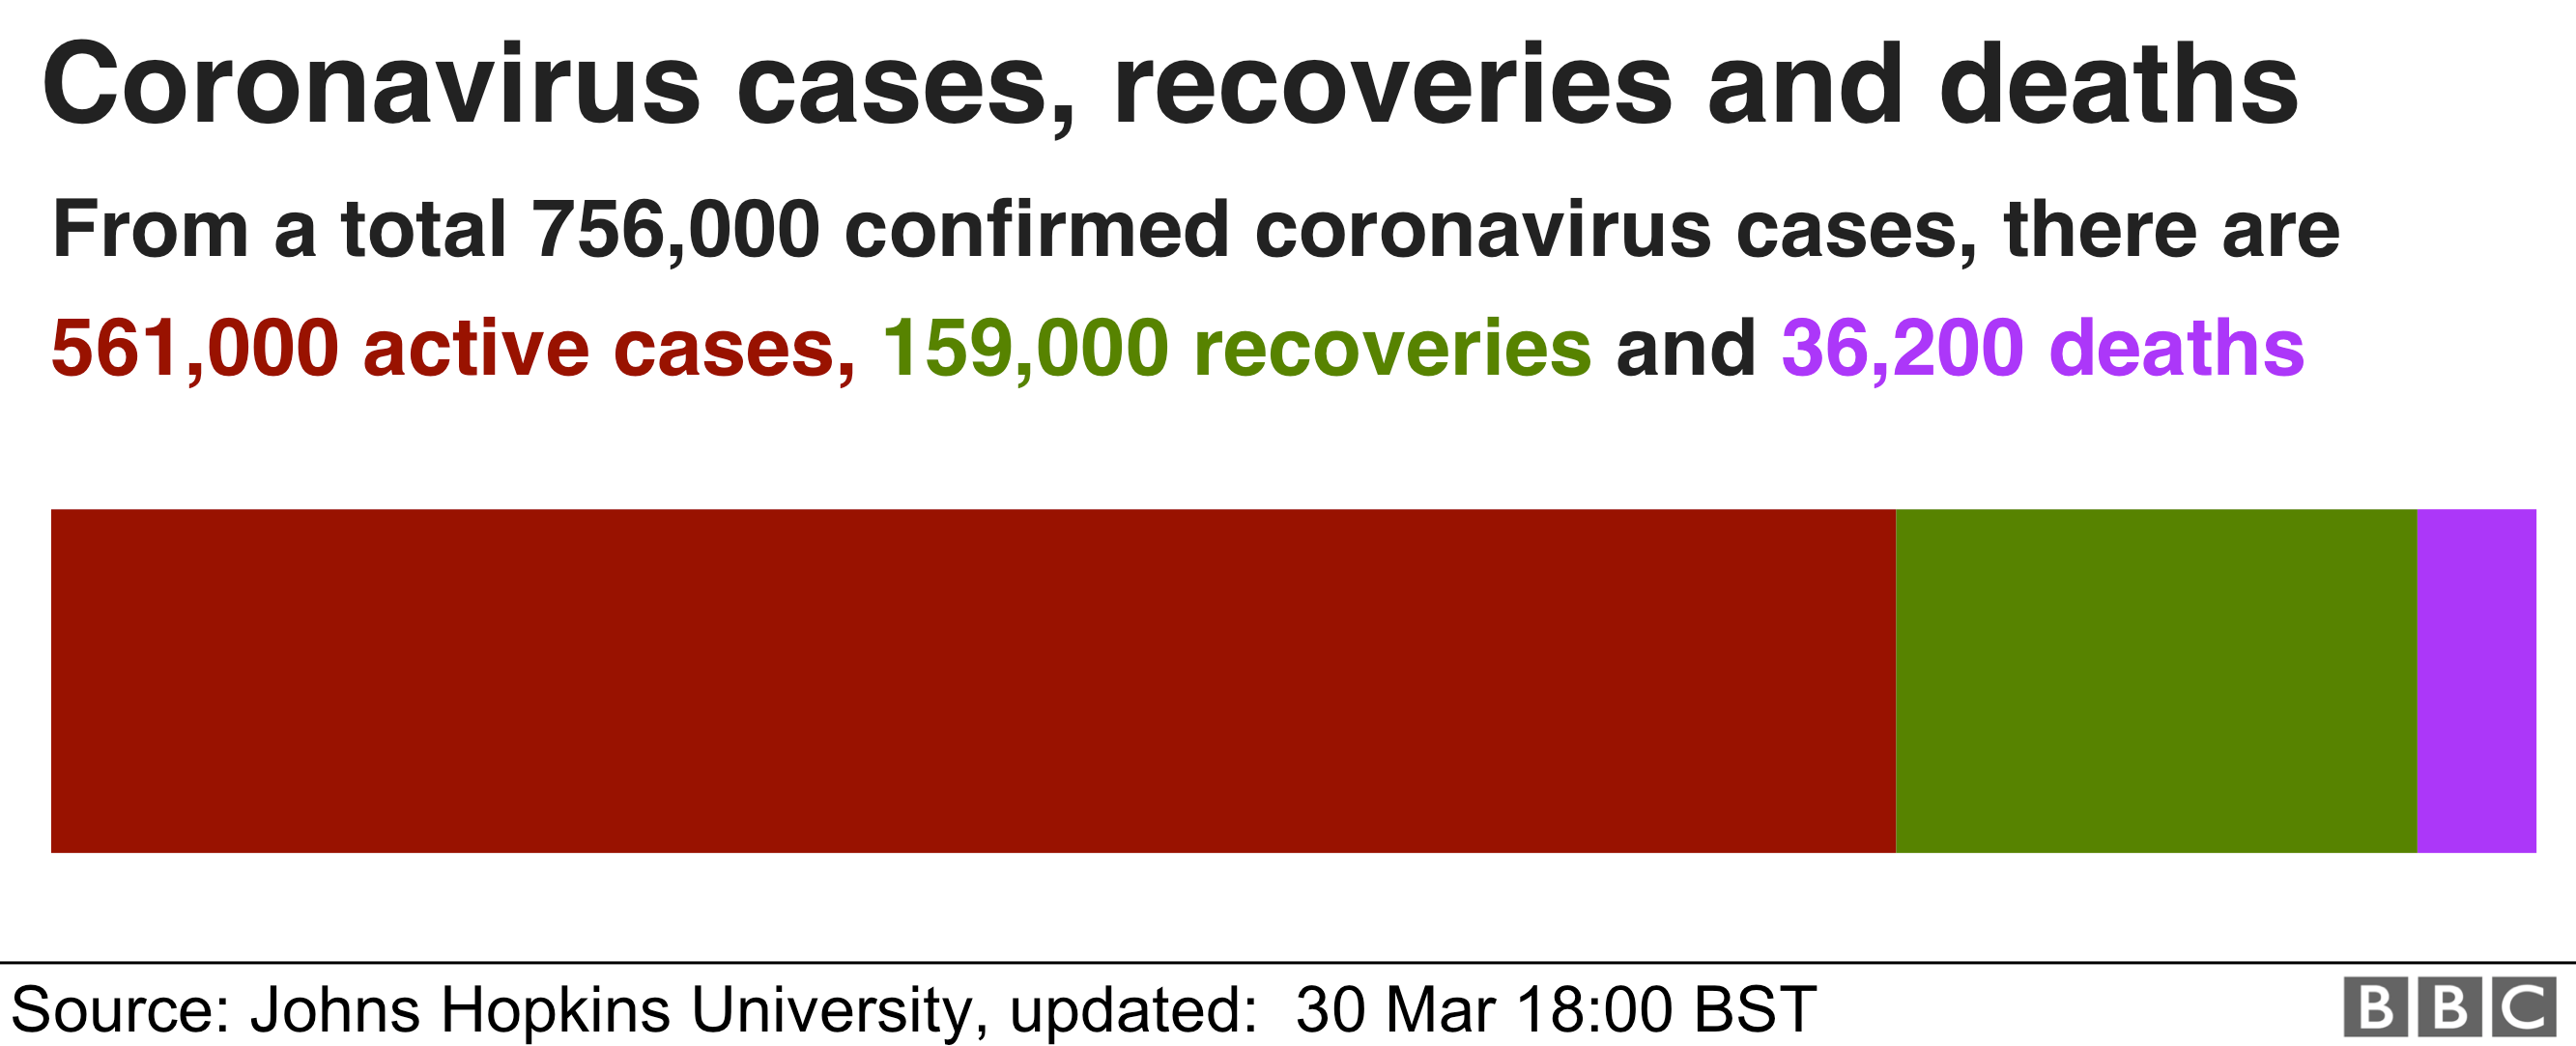 Chart showing coronavirus cases: 561000 active cases, 159,000 recoveries, and 36,200 deaths